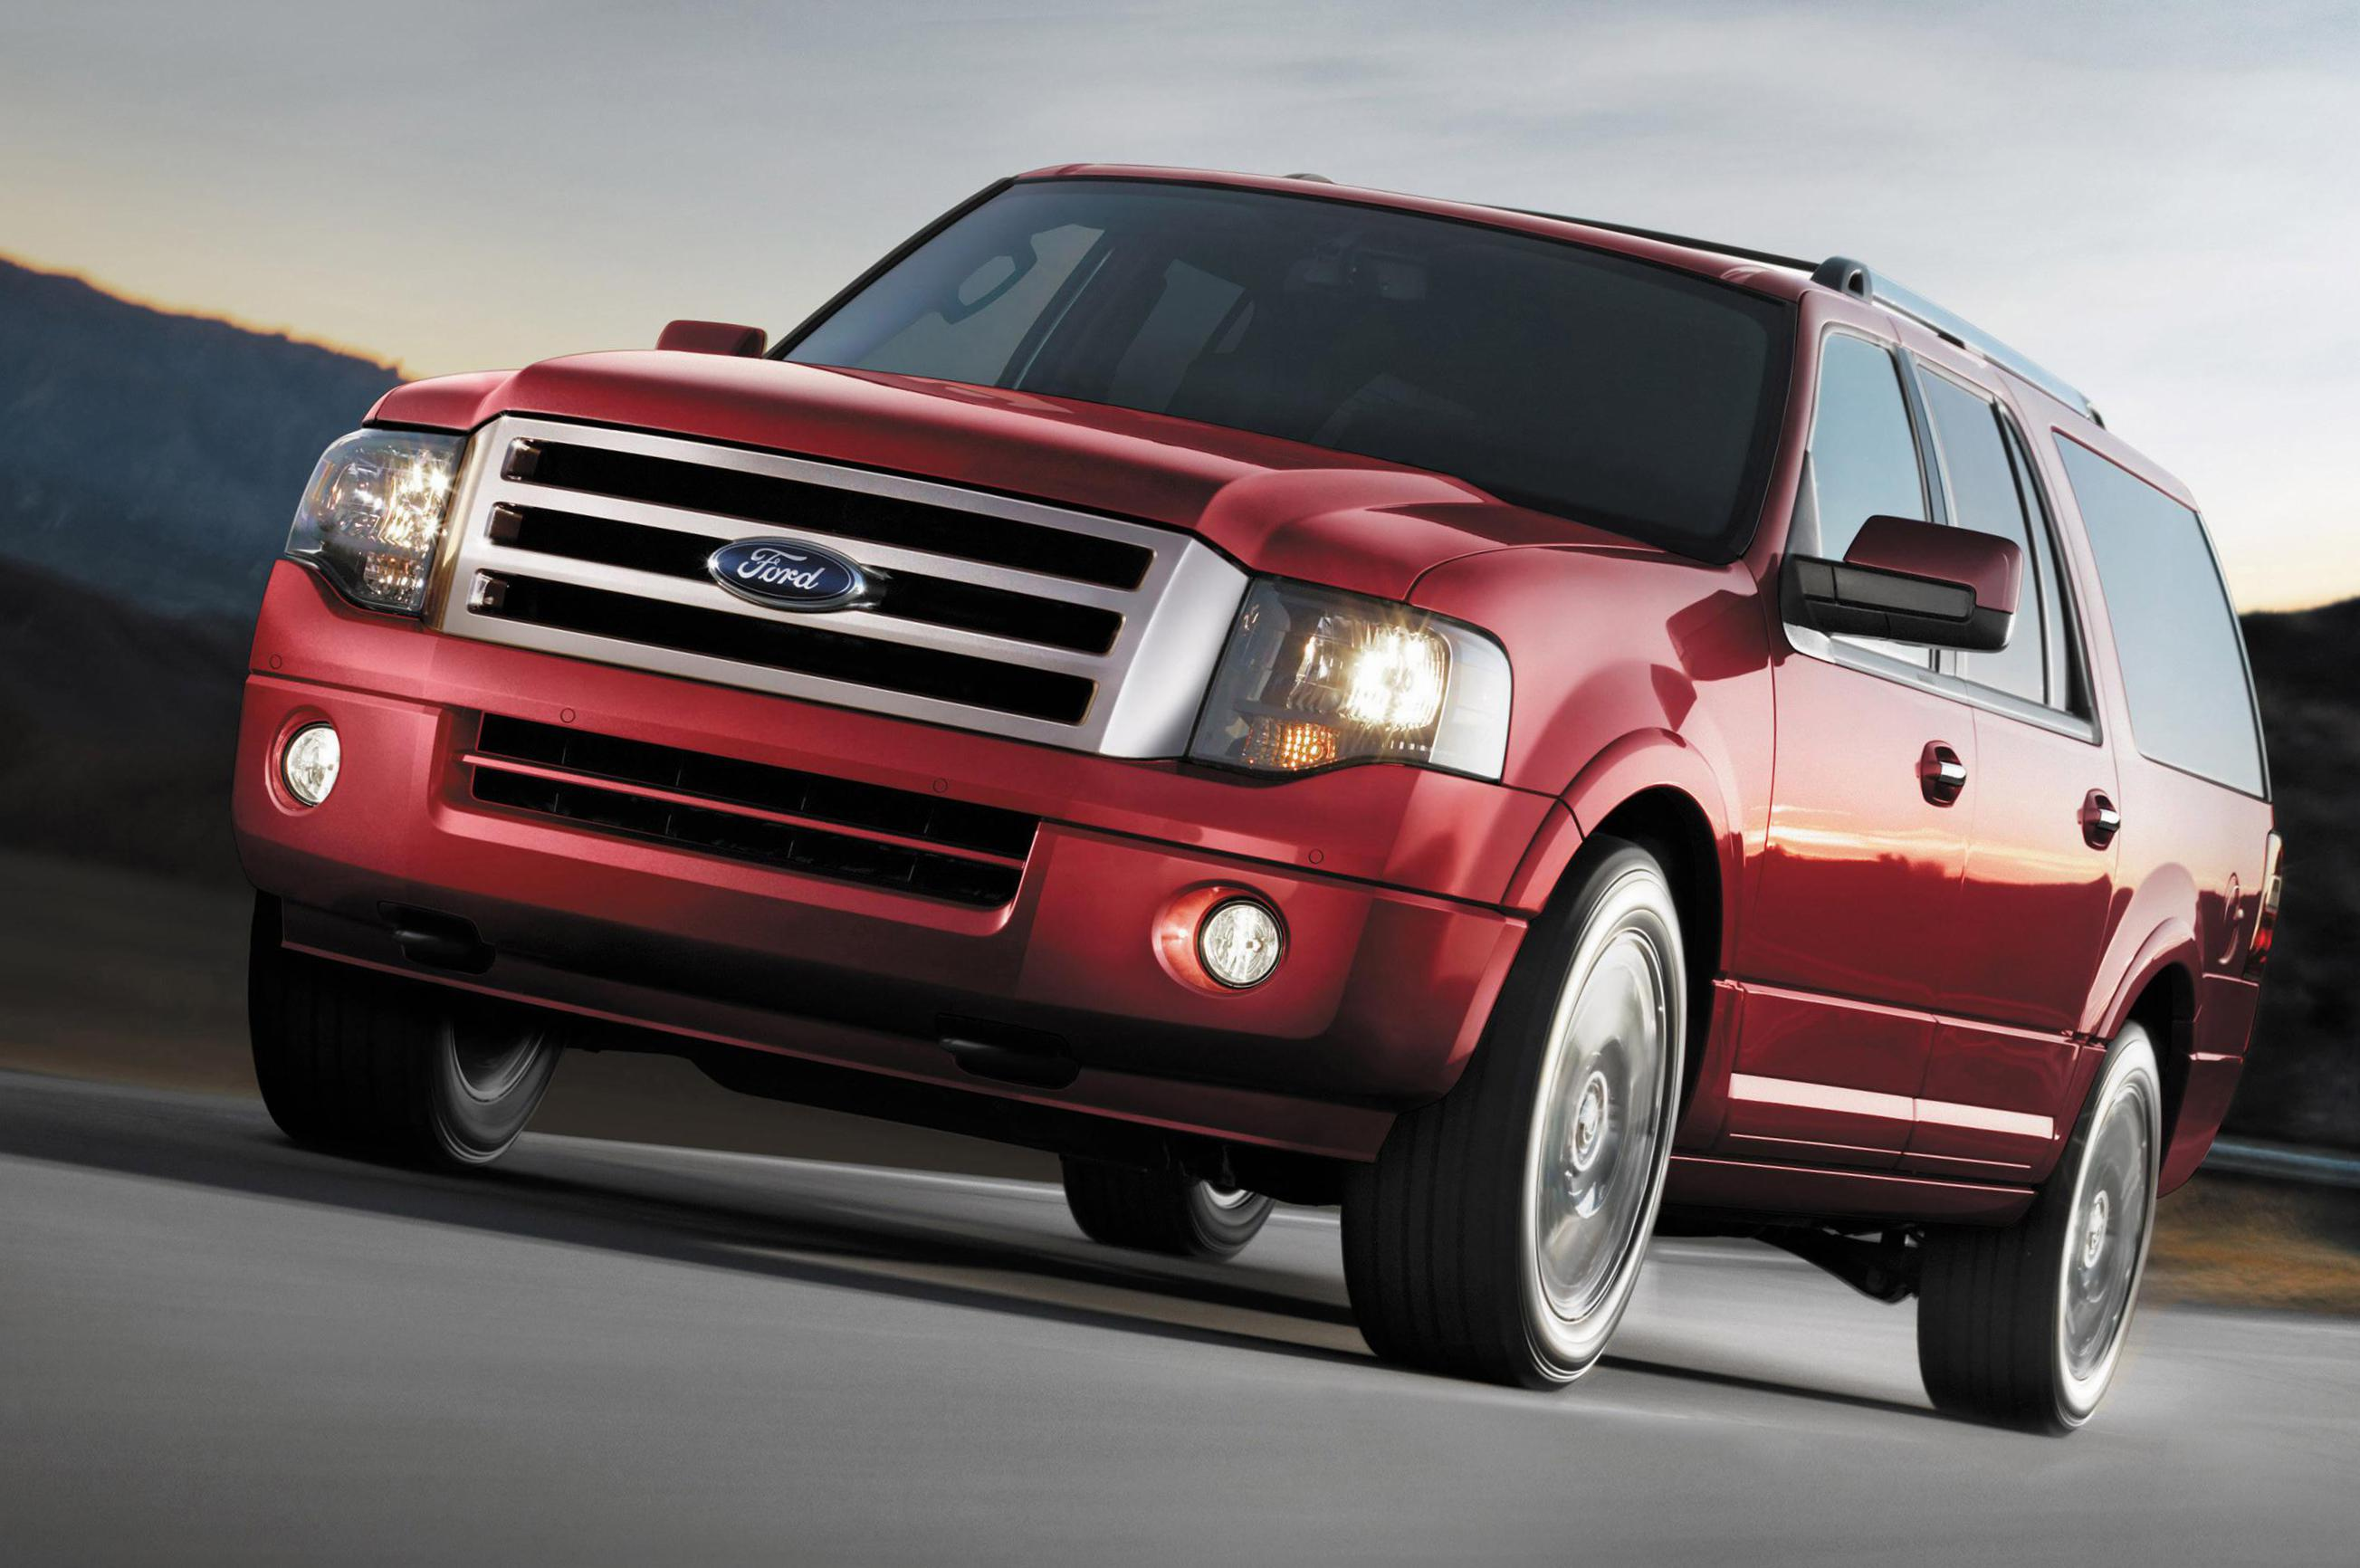 Expedition Ford price 2006